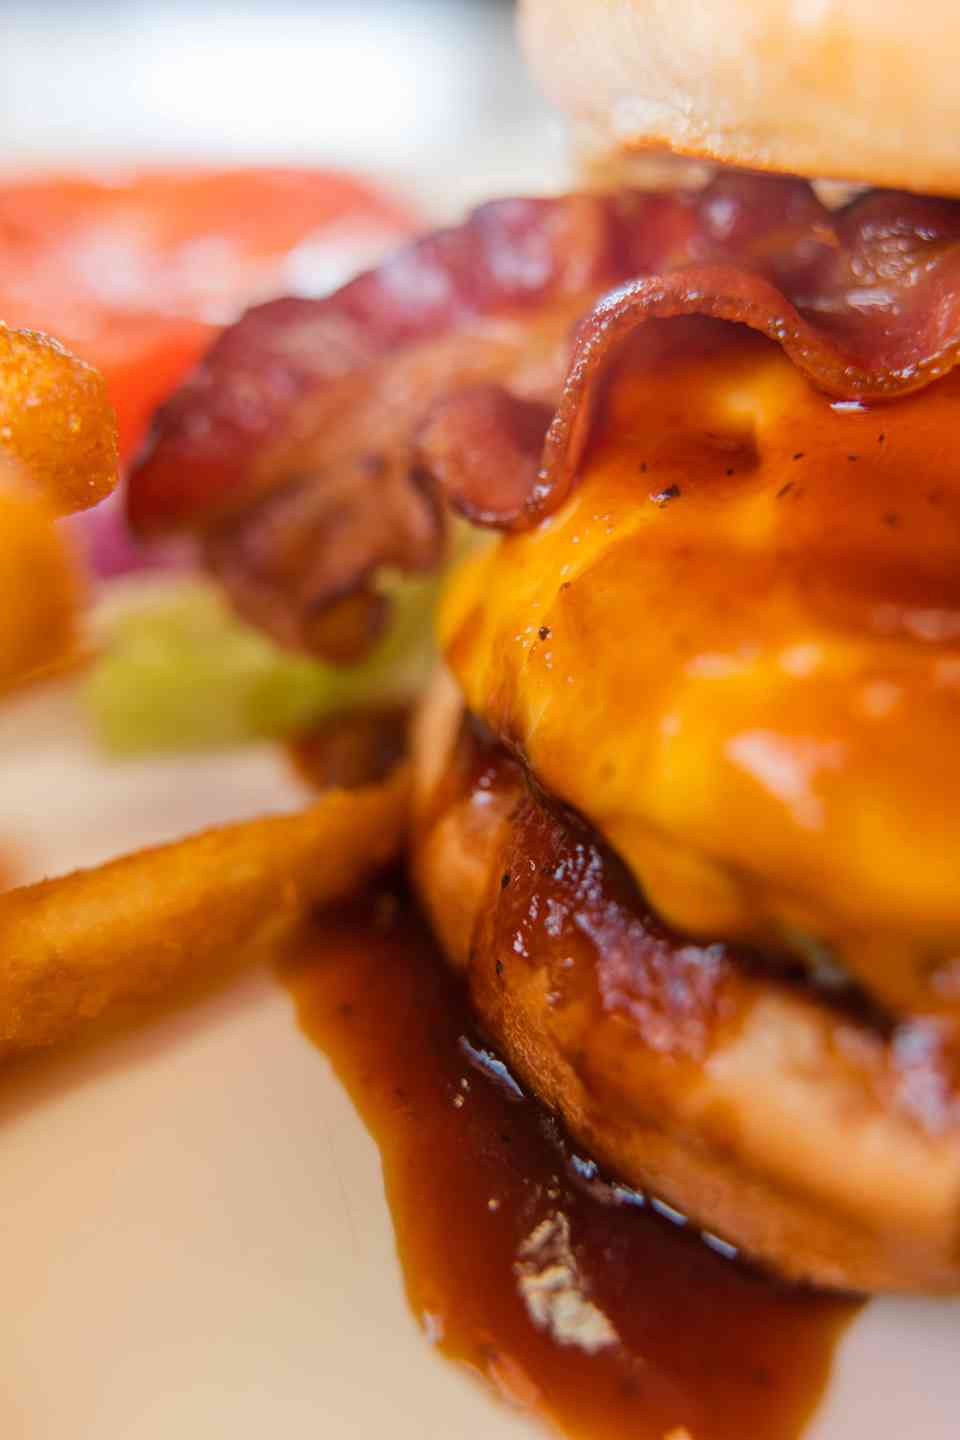 Bacon Cheese Burger*